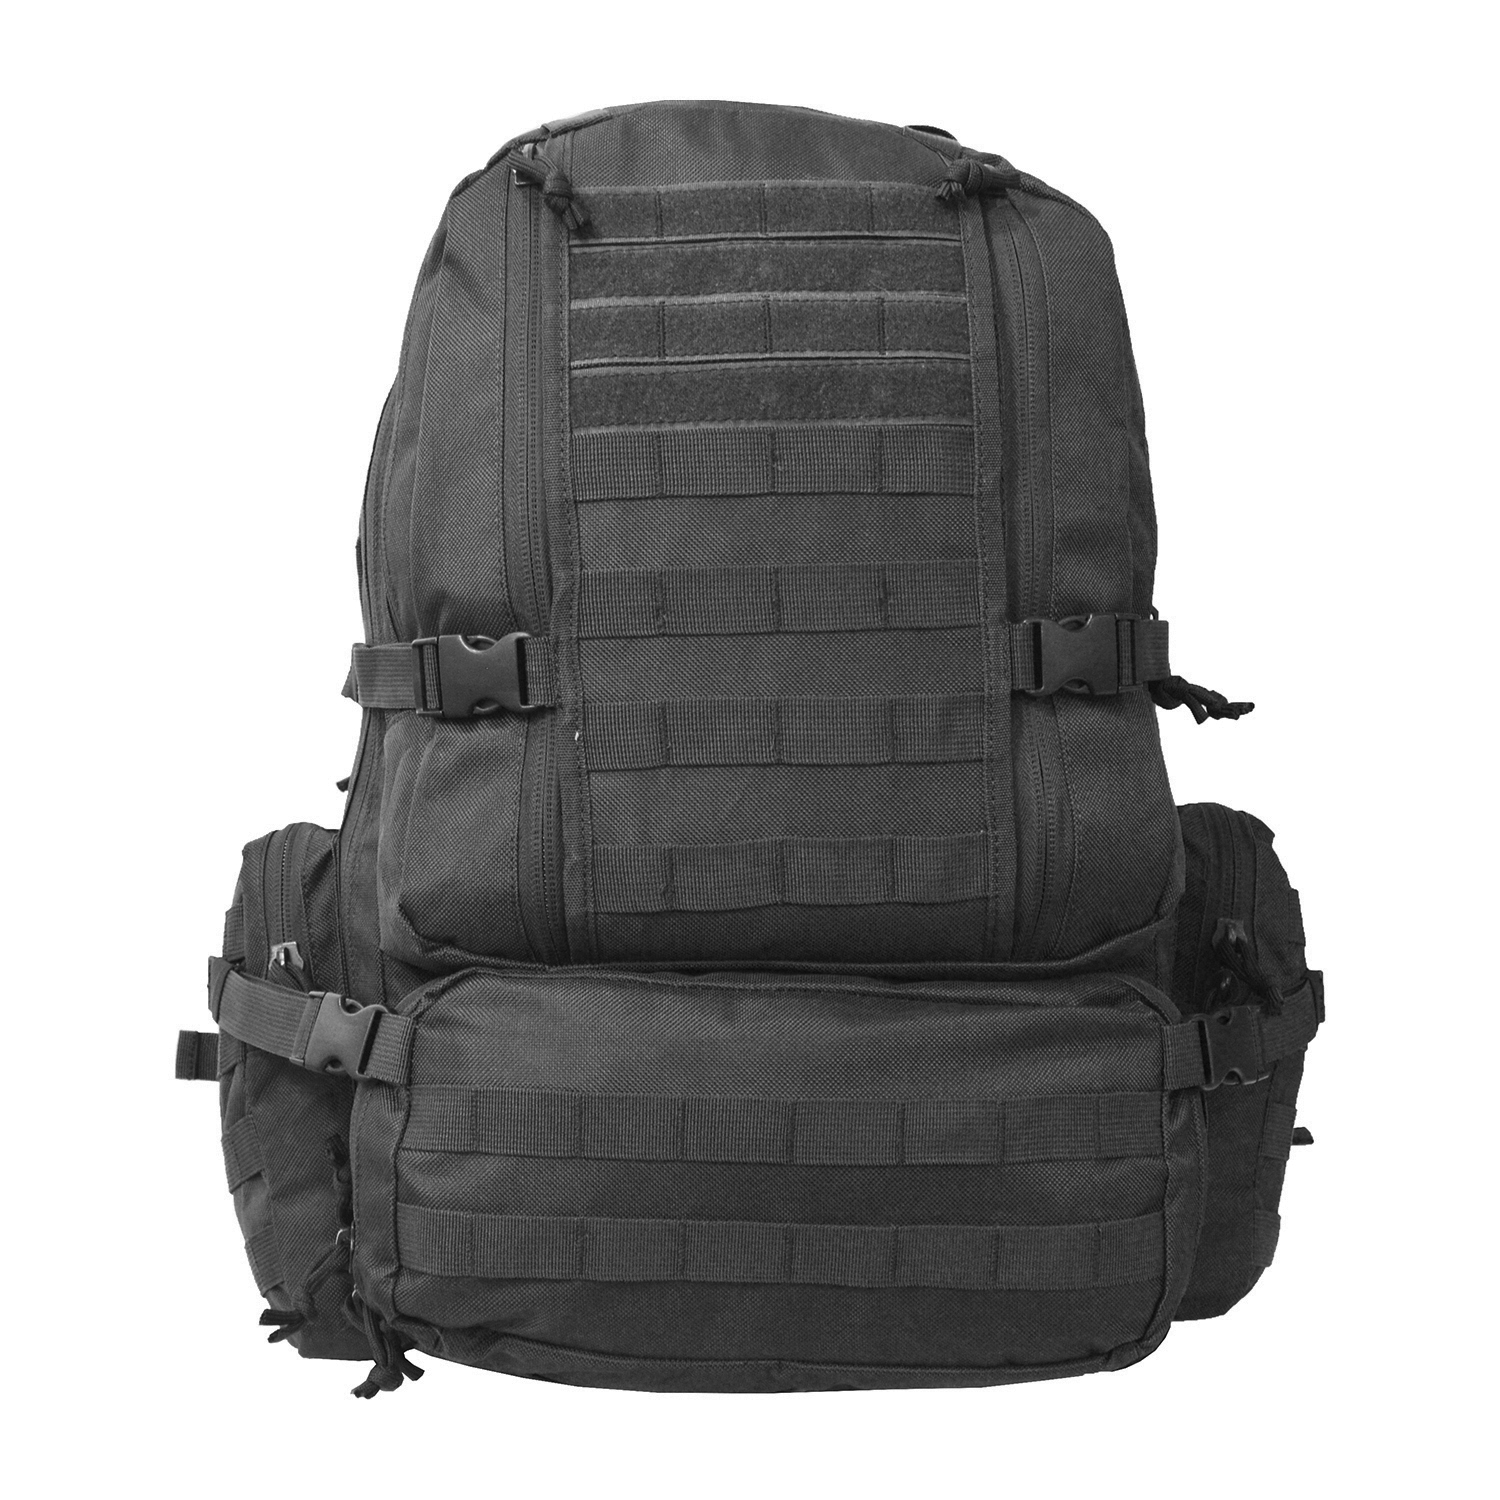 Every Day Carry B12 Large Tactical Multi Pocket Hydration Pack Ready Backpack by Every Day Carry